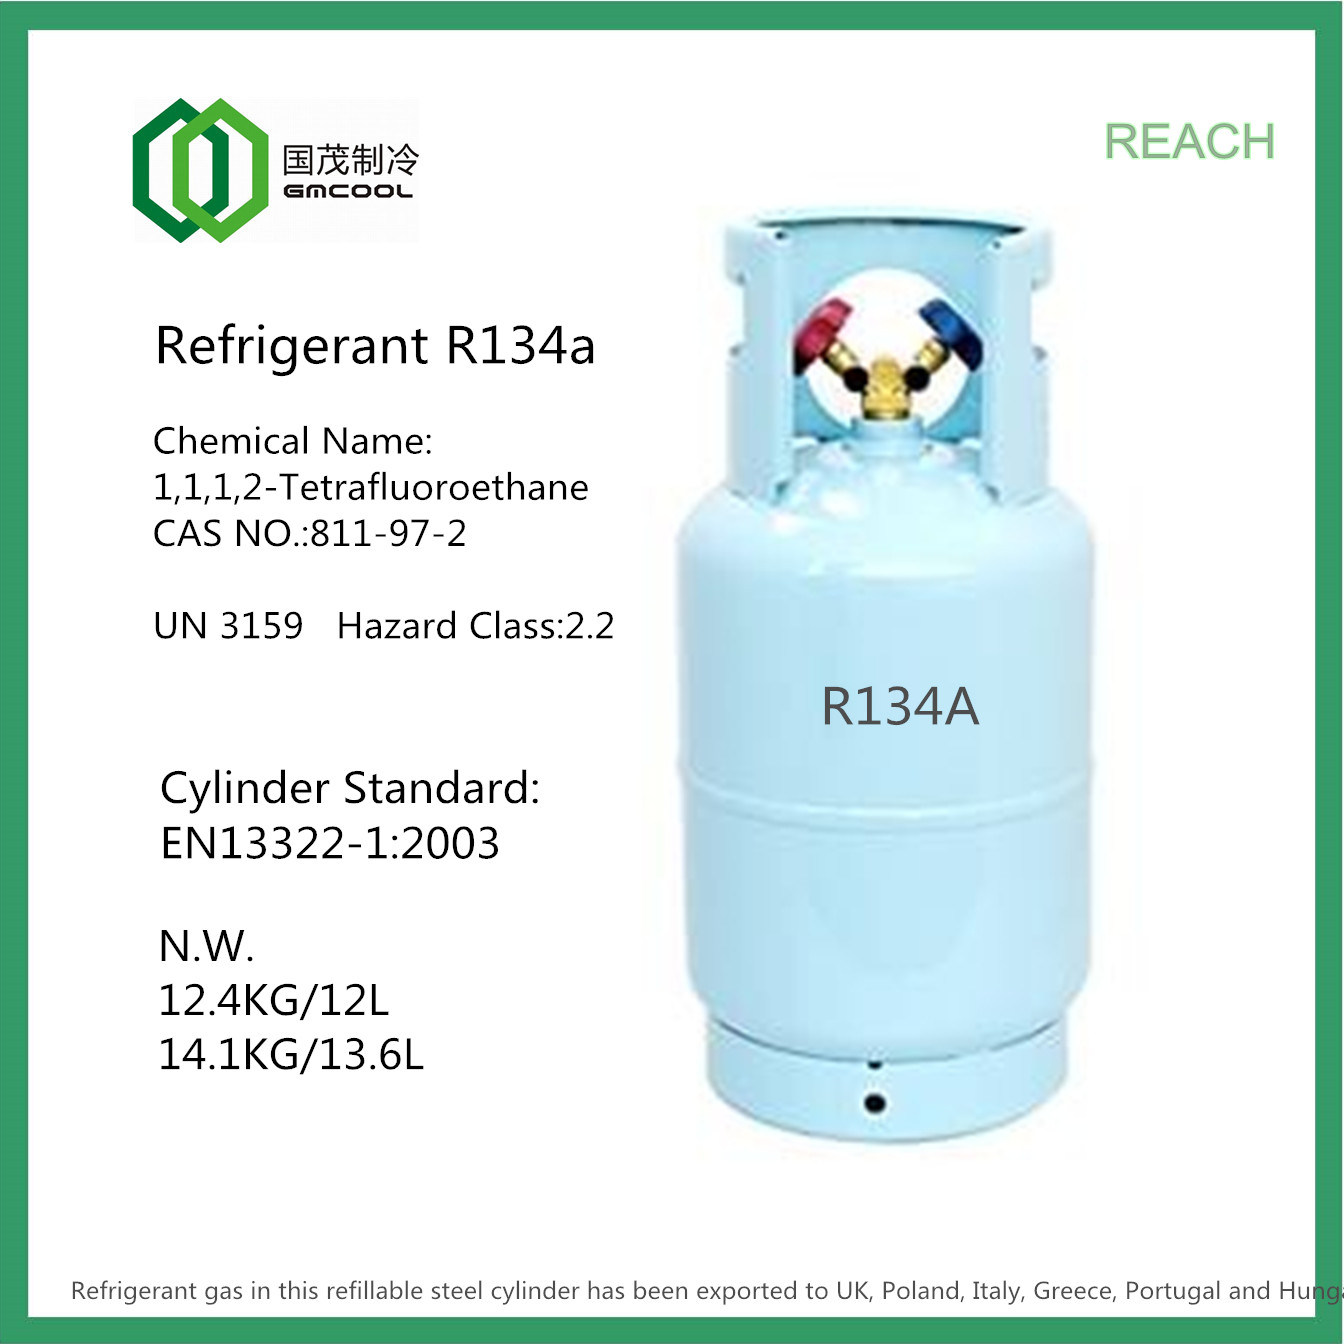 #17832F Guomao Refrigerant Gas (R134A) With Refillable CE Cylinder  Brand New 5961 R12 Refrigerant Replacement Gas images with 1344x1344 px on helpvideos.info - Air Conditioners, Air Coolers and more